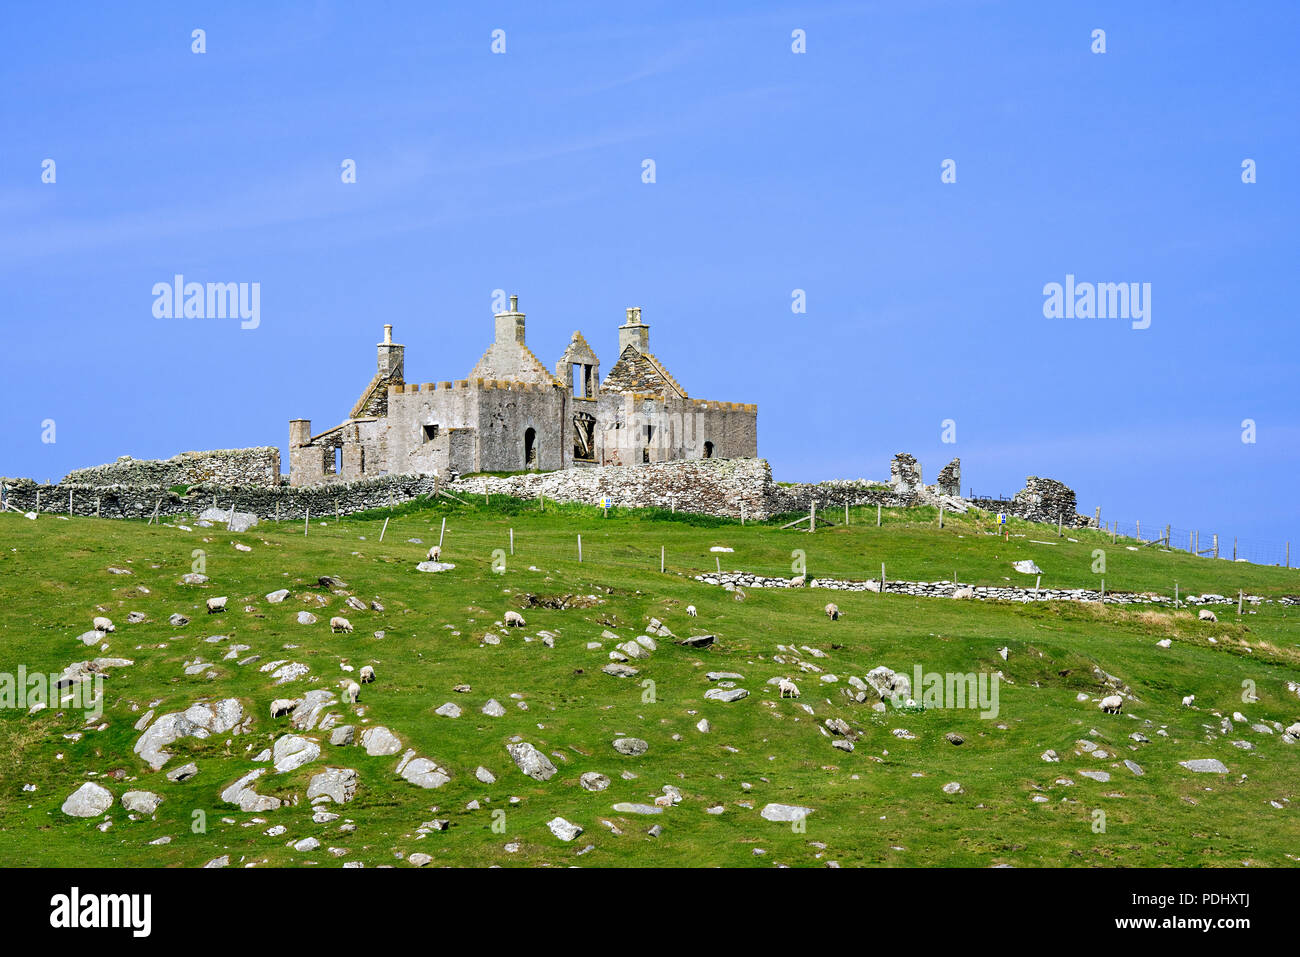 Ruin of the 18th century Windhouse, most haunted house in Shetland, Yell, Shetland Islands, Scotland, UK - Stock Image